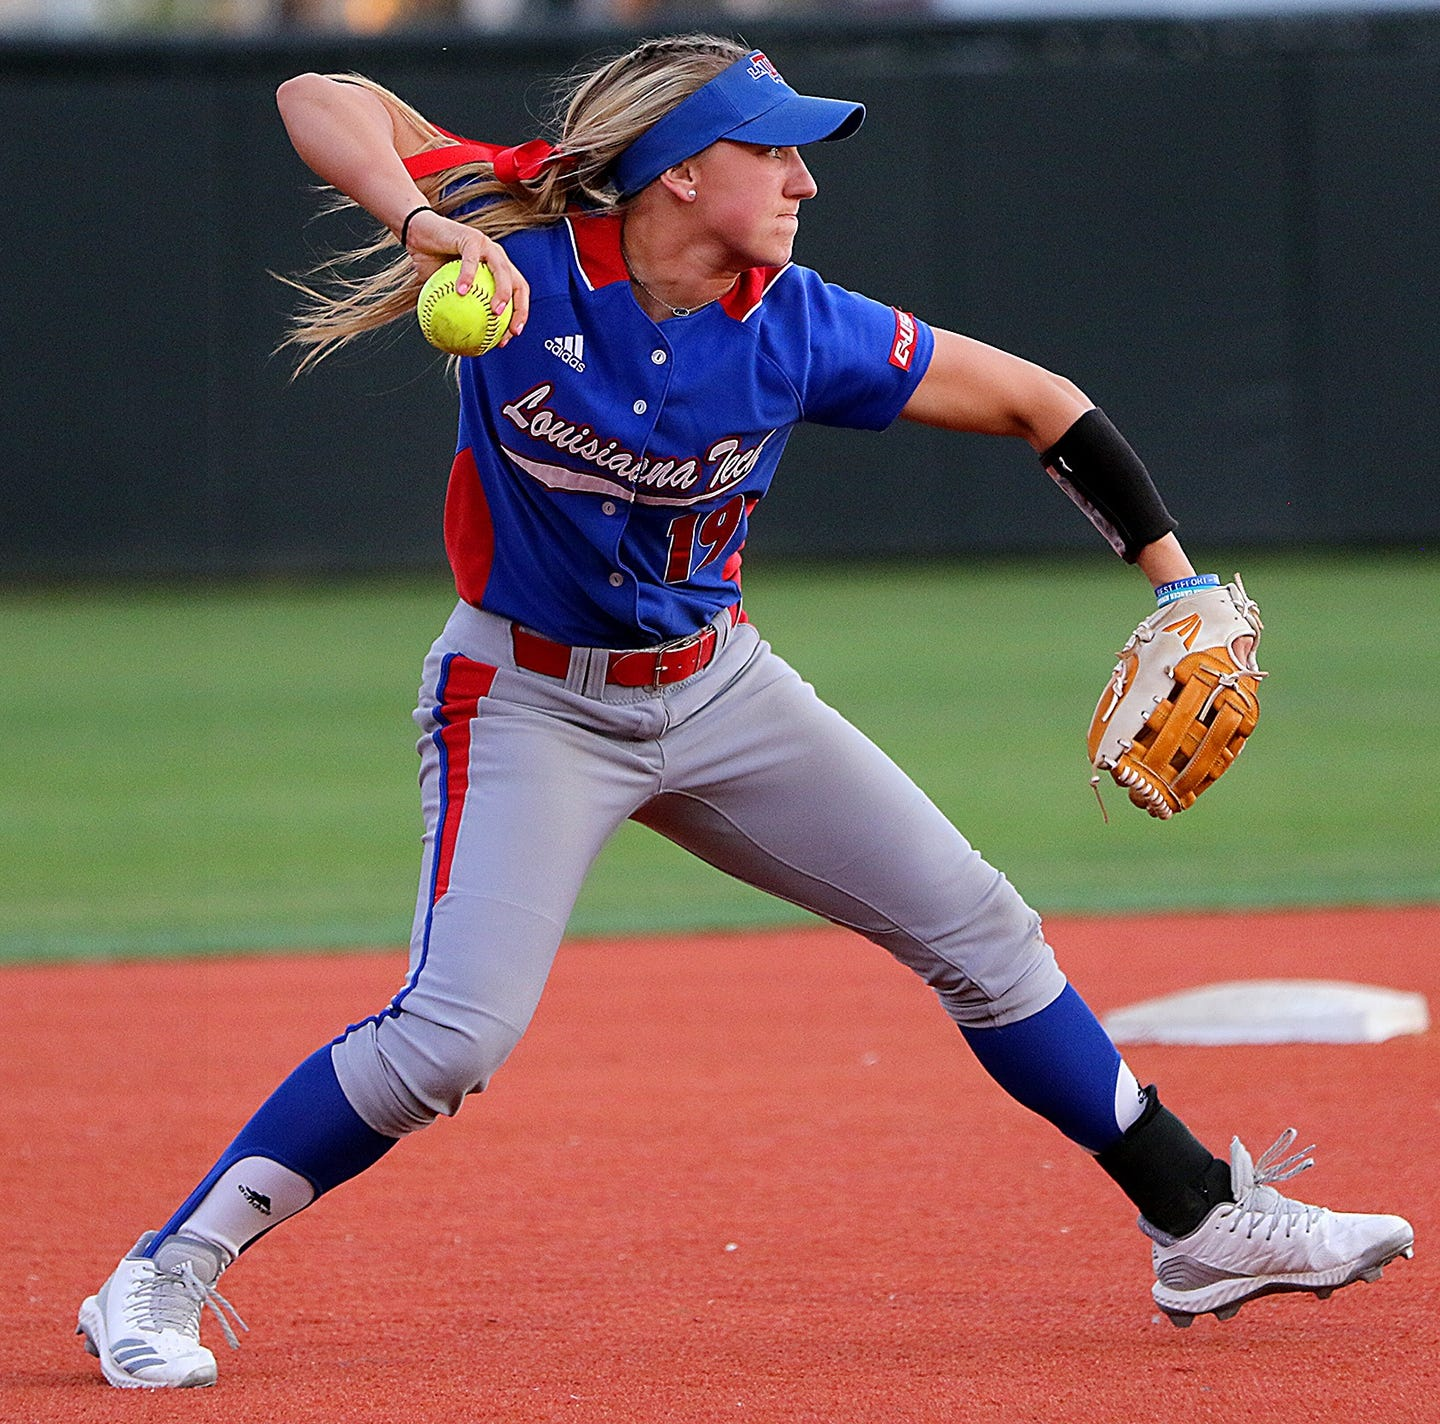 La. Tech's Bayli Simon advances as Techster leader